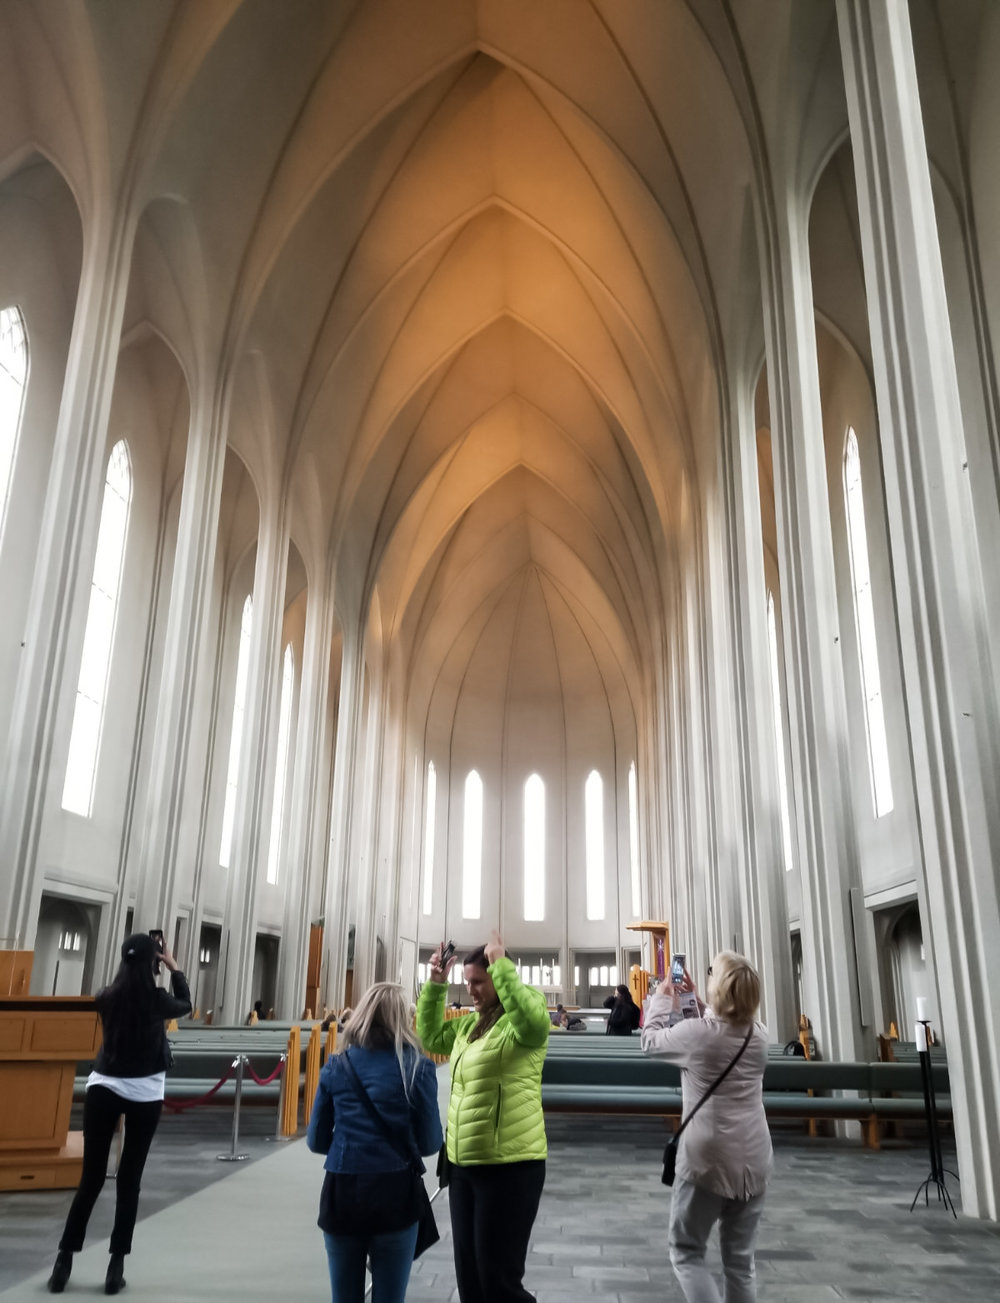 Kim explaining something really interesting to me inside of the Hallgrimskirkja Cathedral